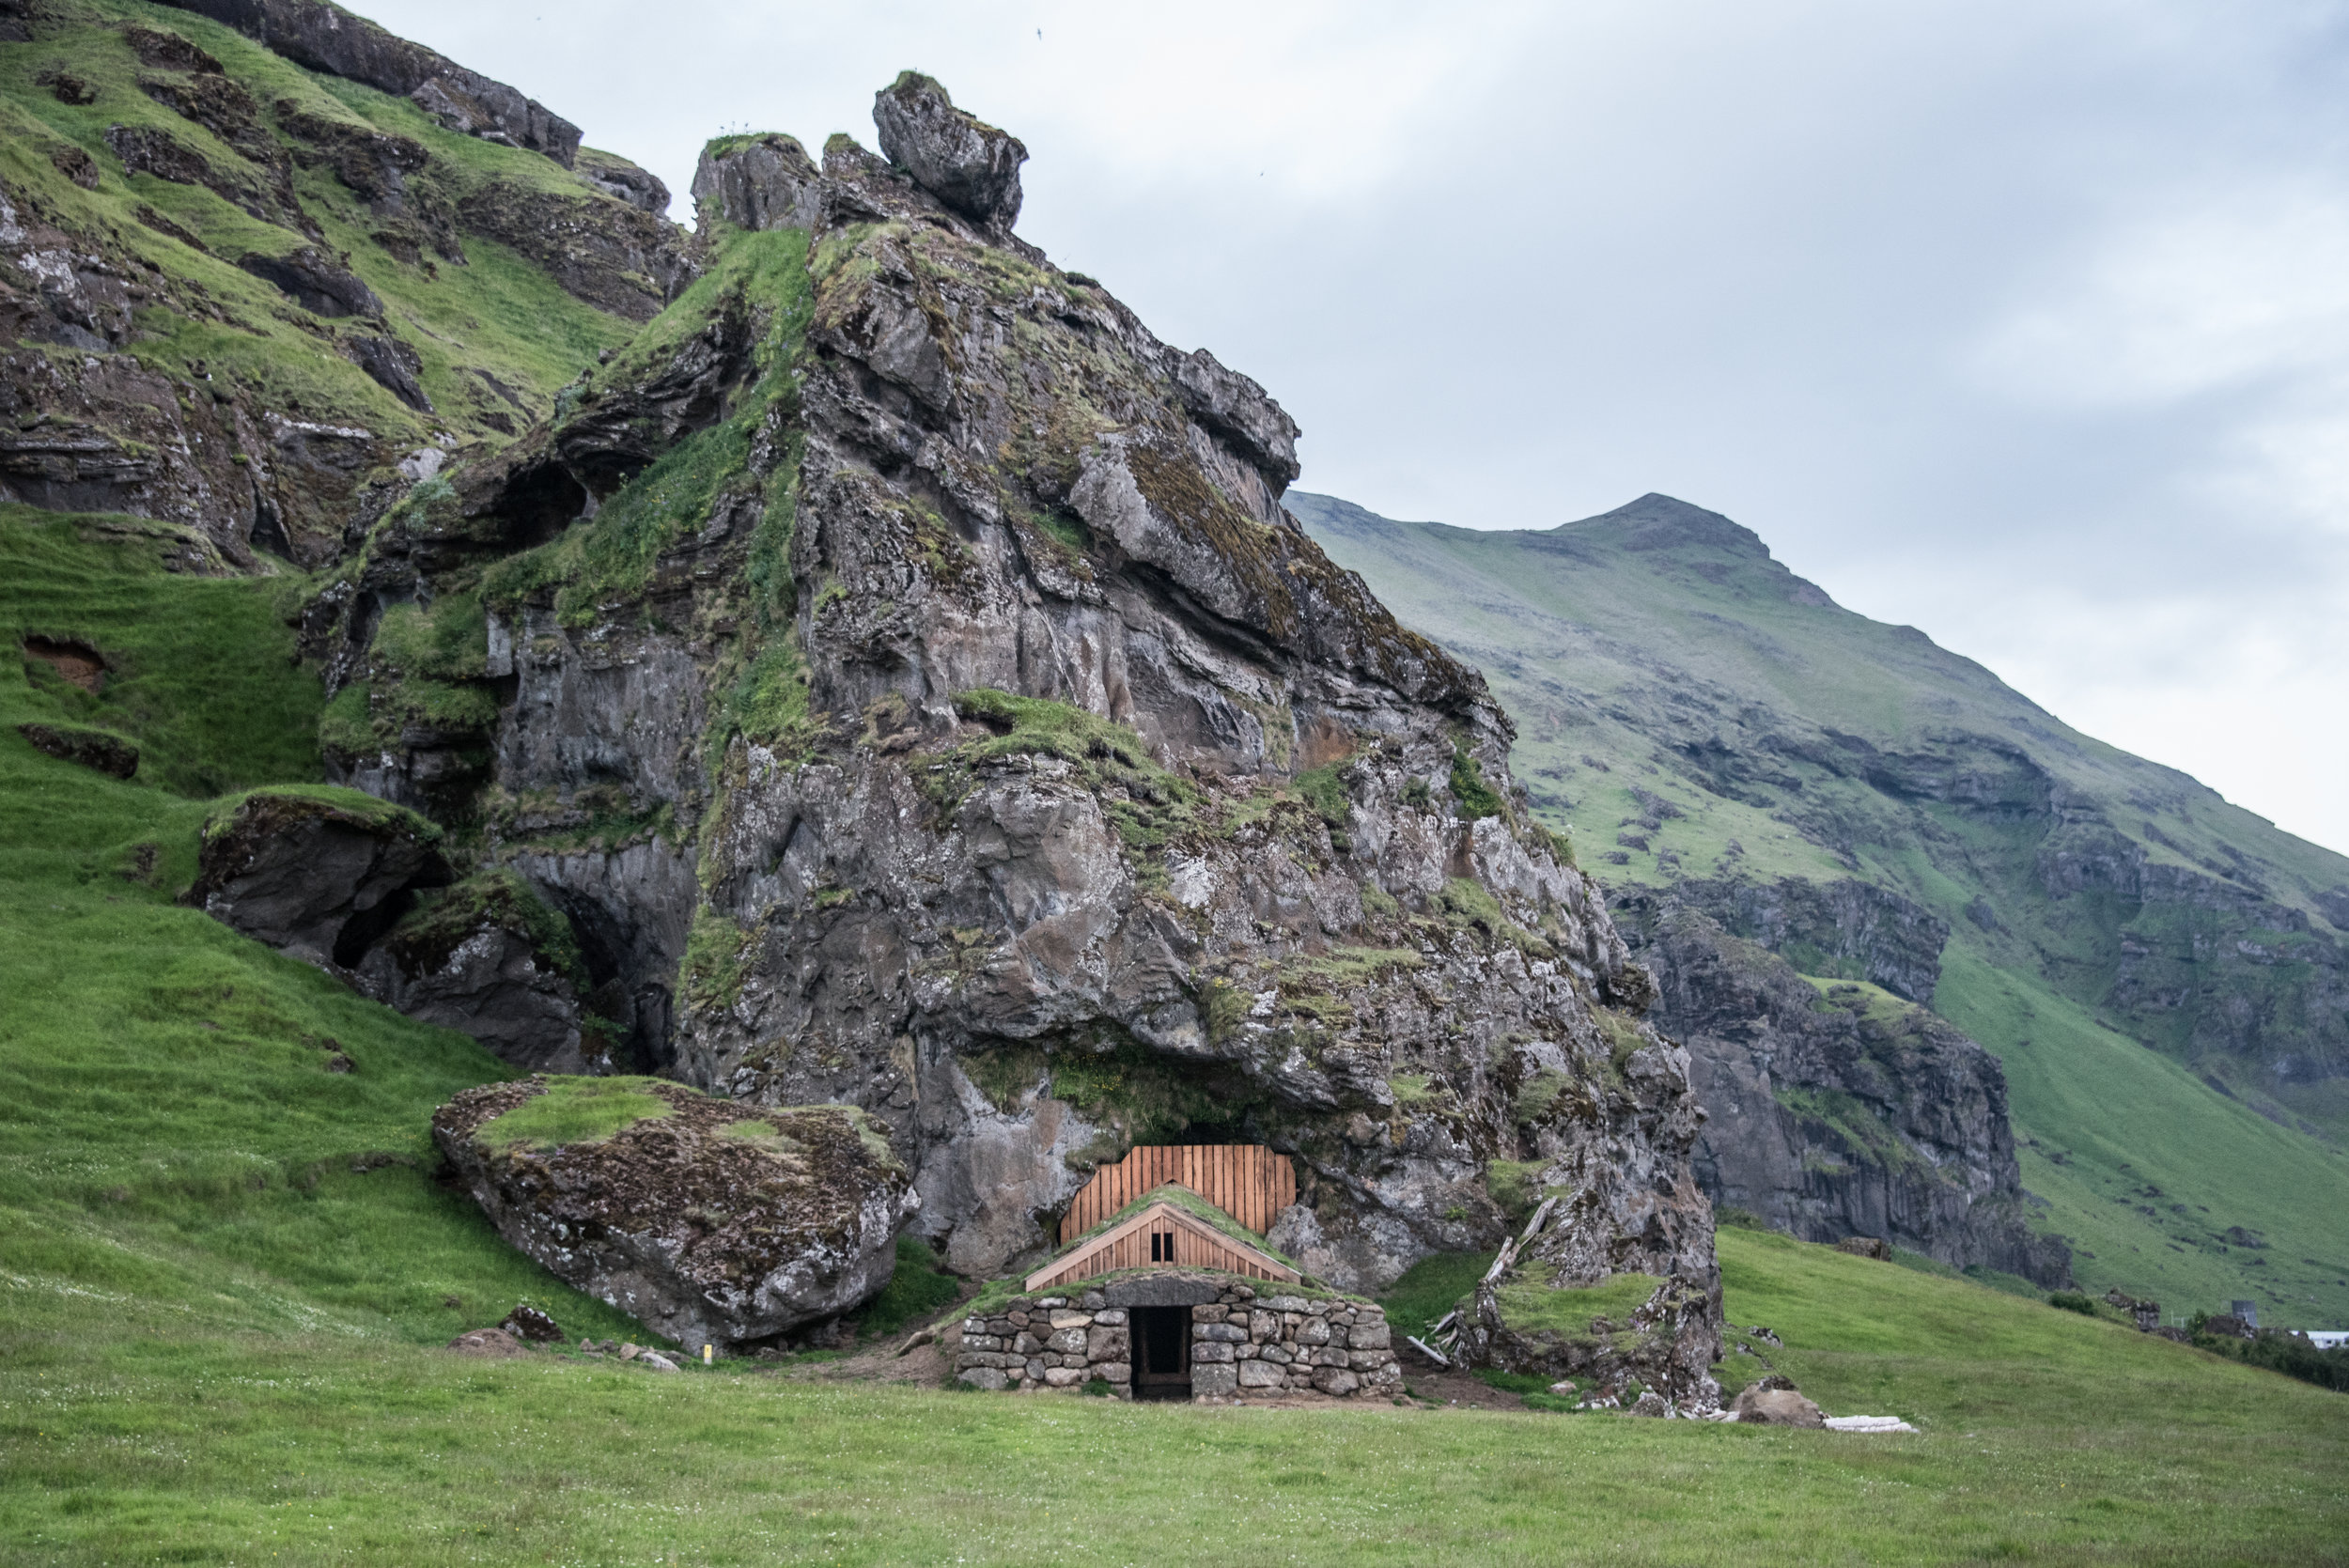 Icelandic huts were traditionally built into the earth for insulation. Livestock were kept on a lower level, and their body heat, radiating upward through widely-spaced floorboards, was used to heat the human inhabitants.